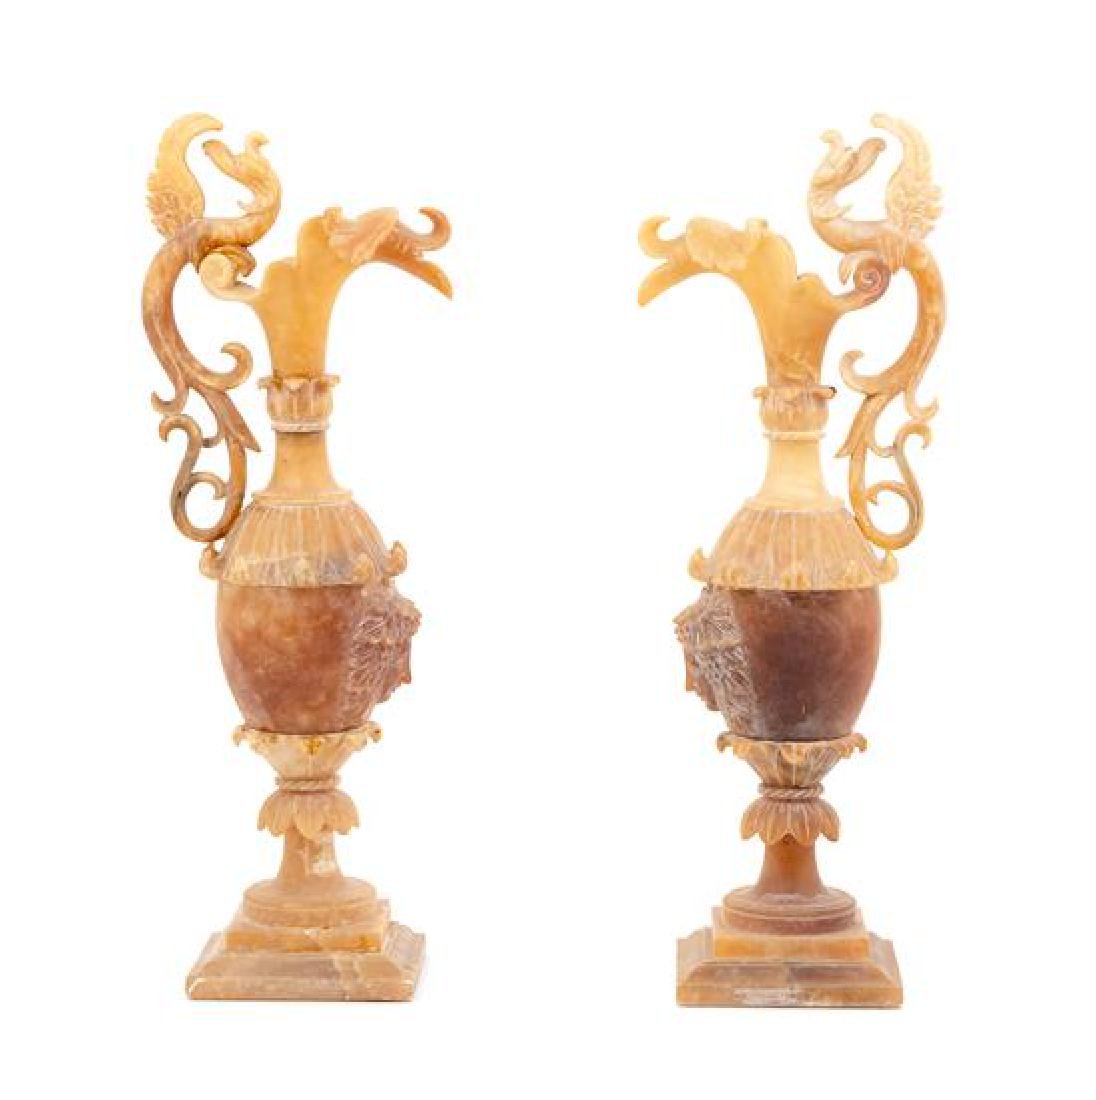 A Pair of Italian Carved Alabaster Ewers Height 22